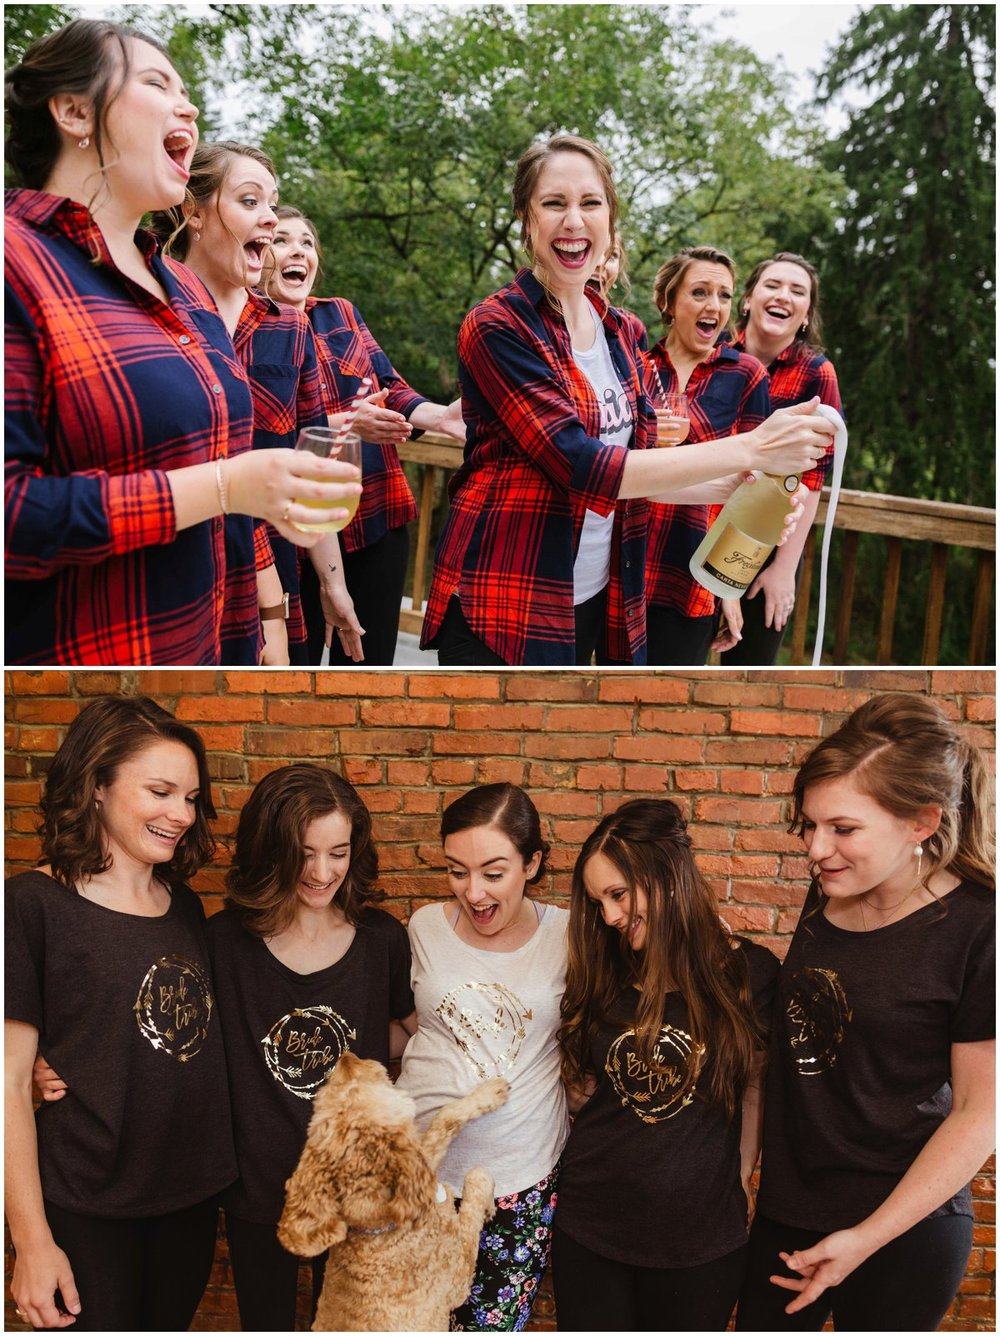 urban-row-photography-rosewood-farms-bridesmaids-shirts_0003.jpg